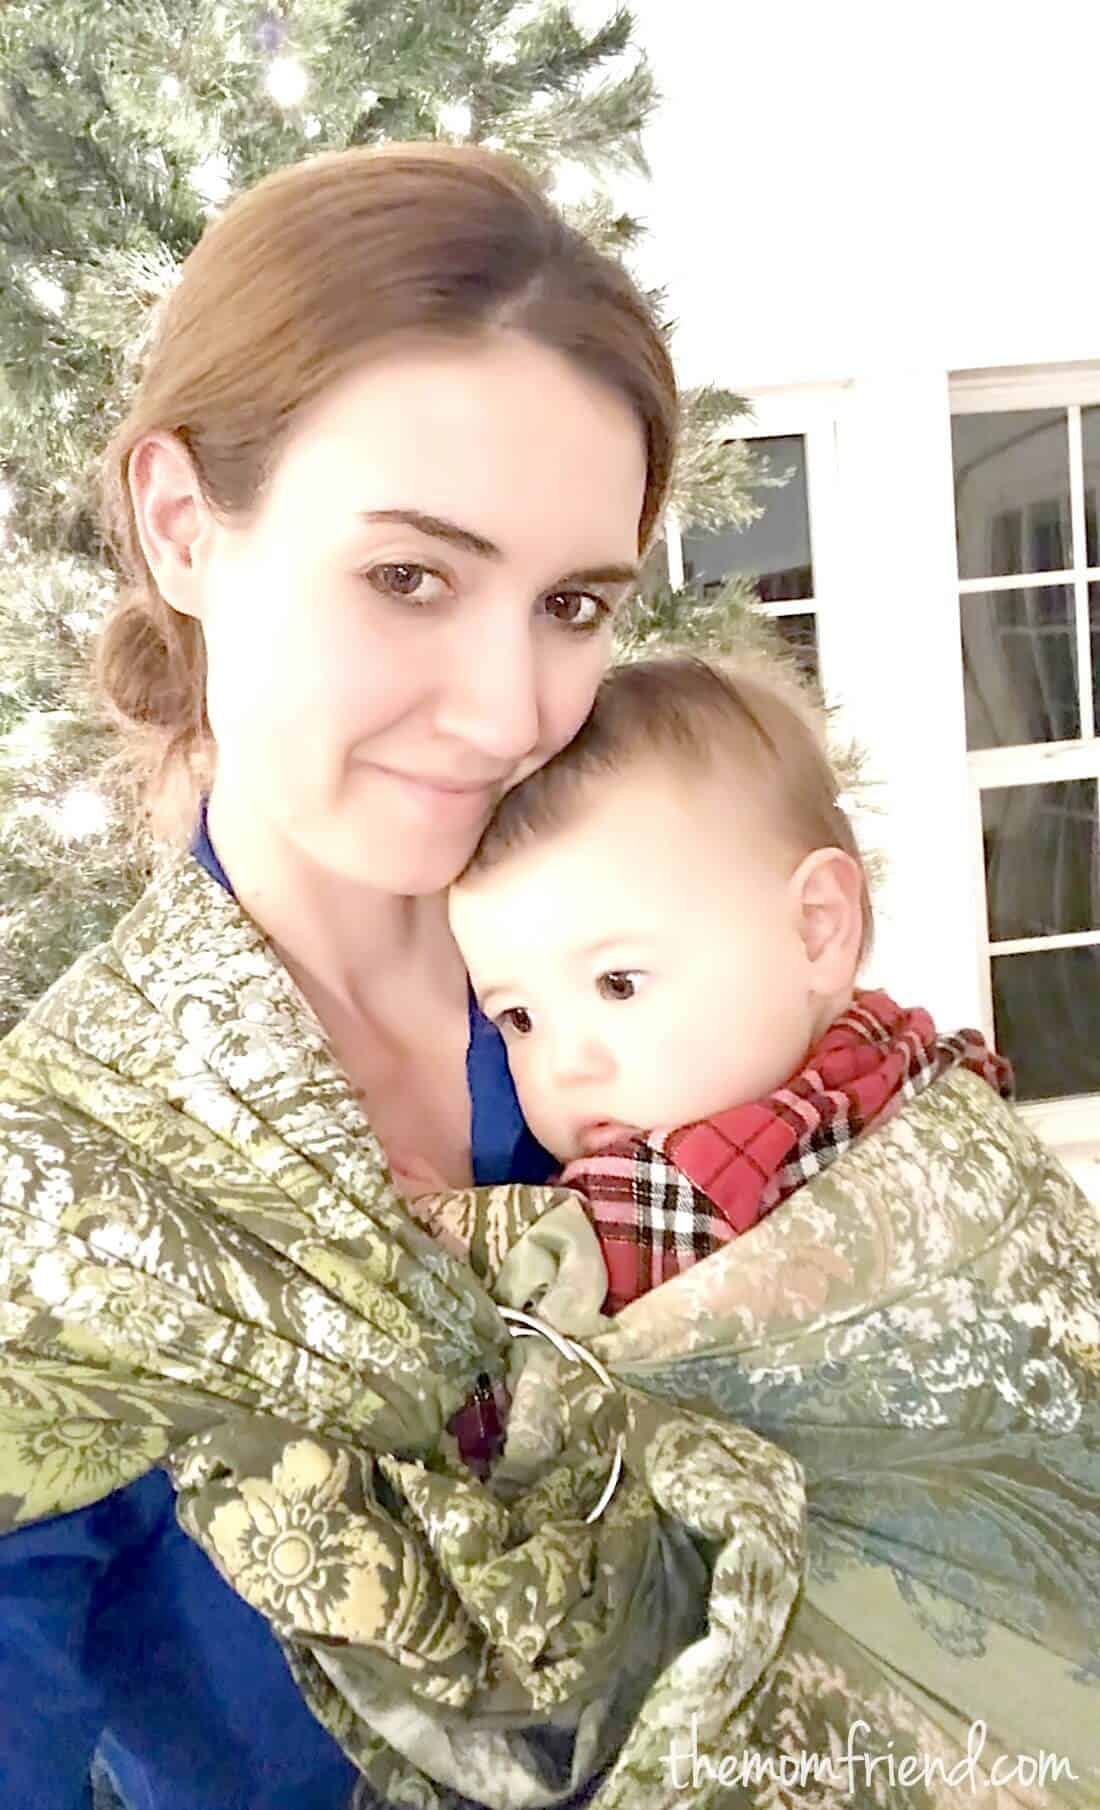 Woman holds baby in baby sling.